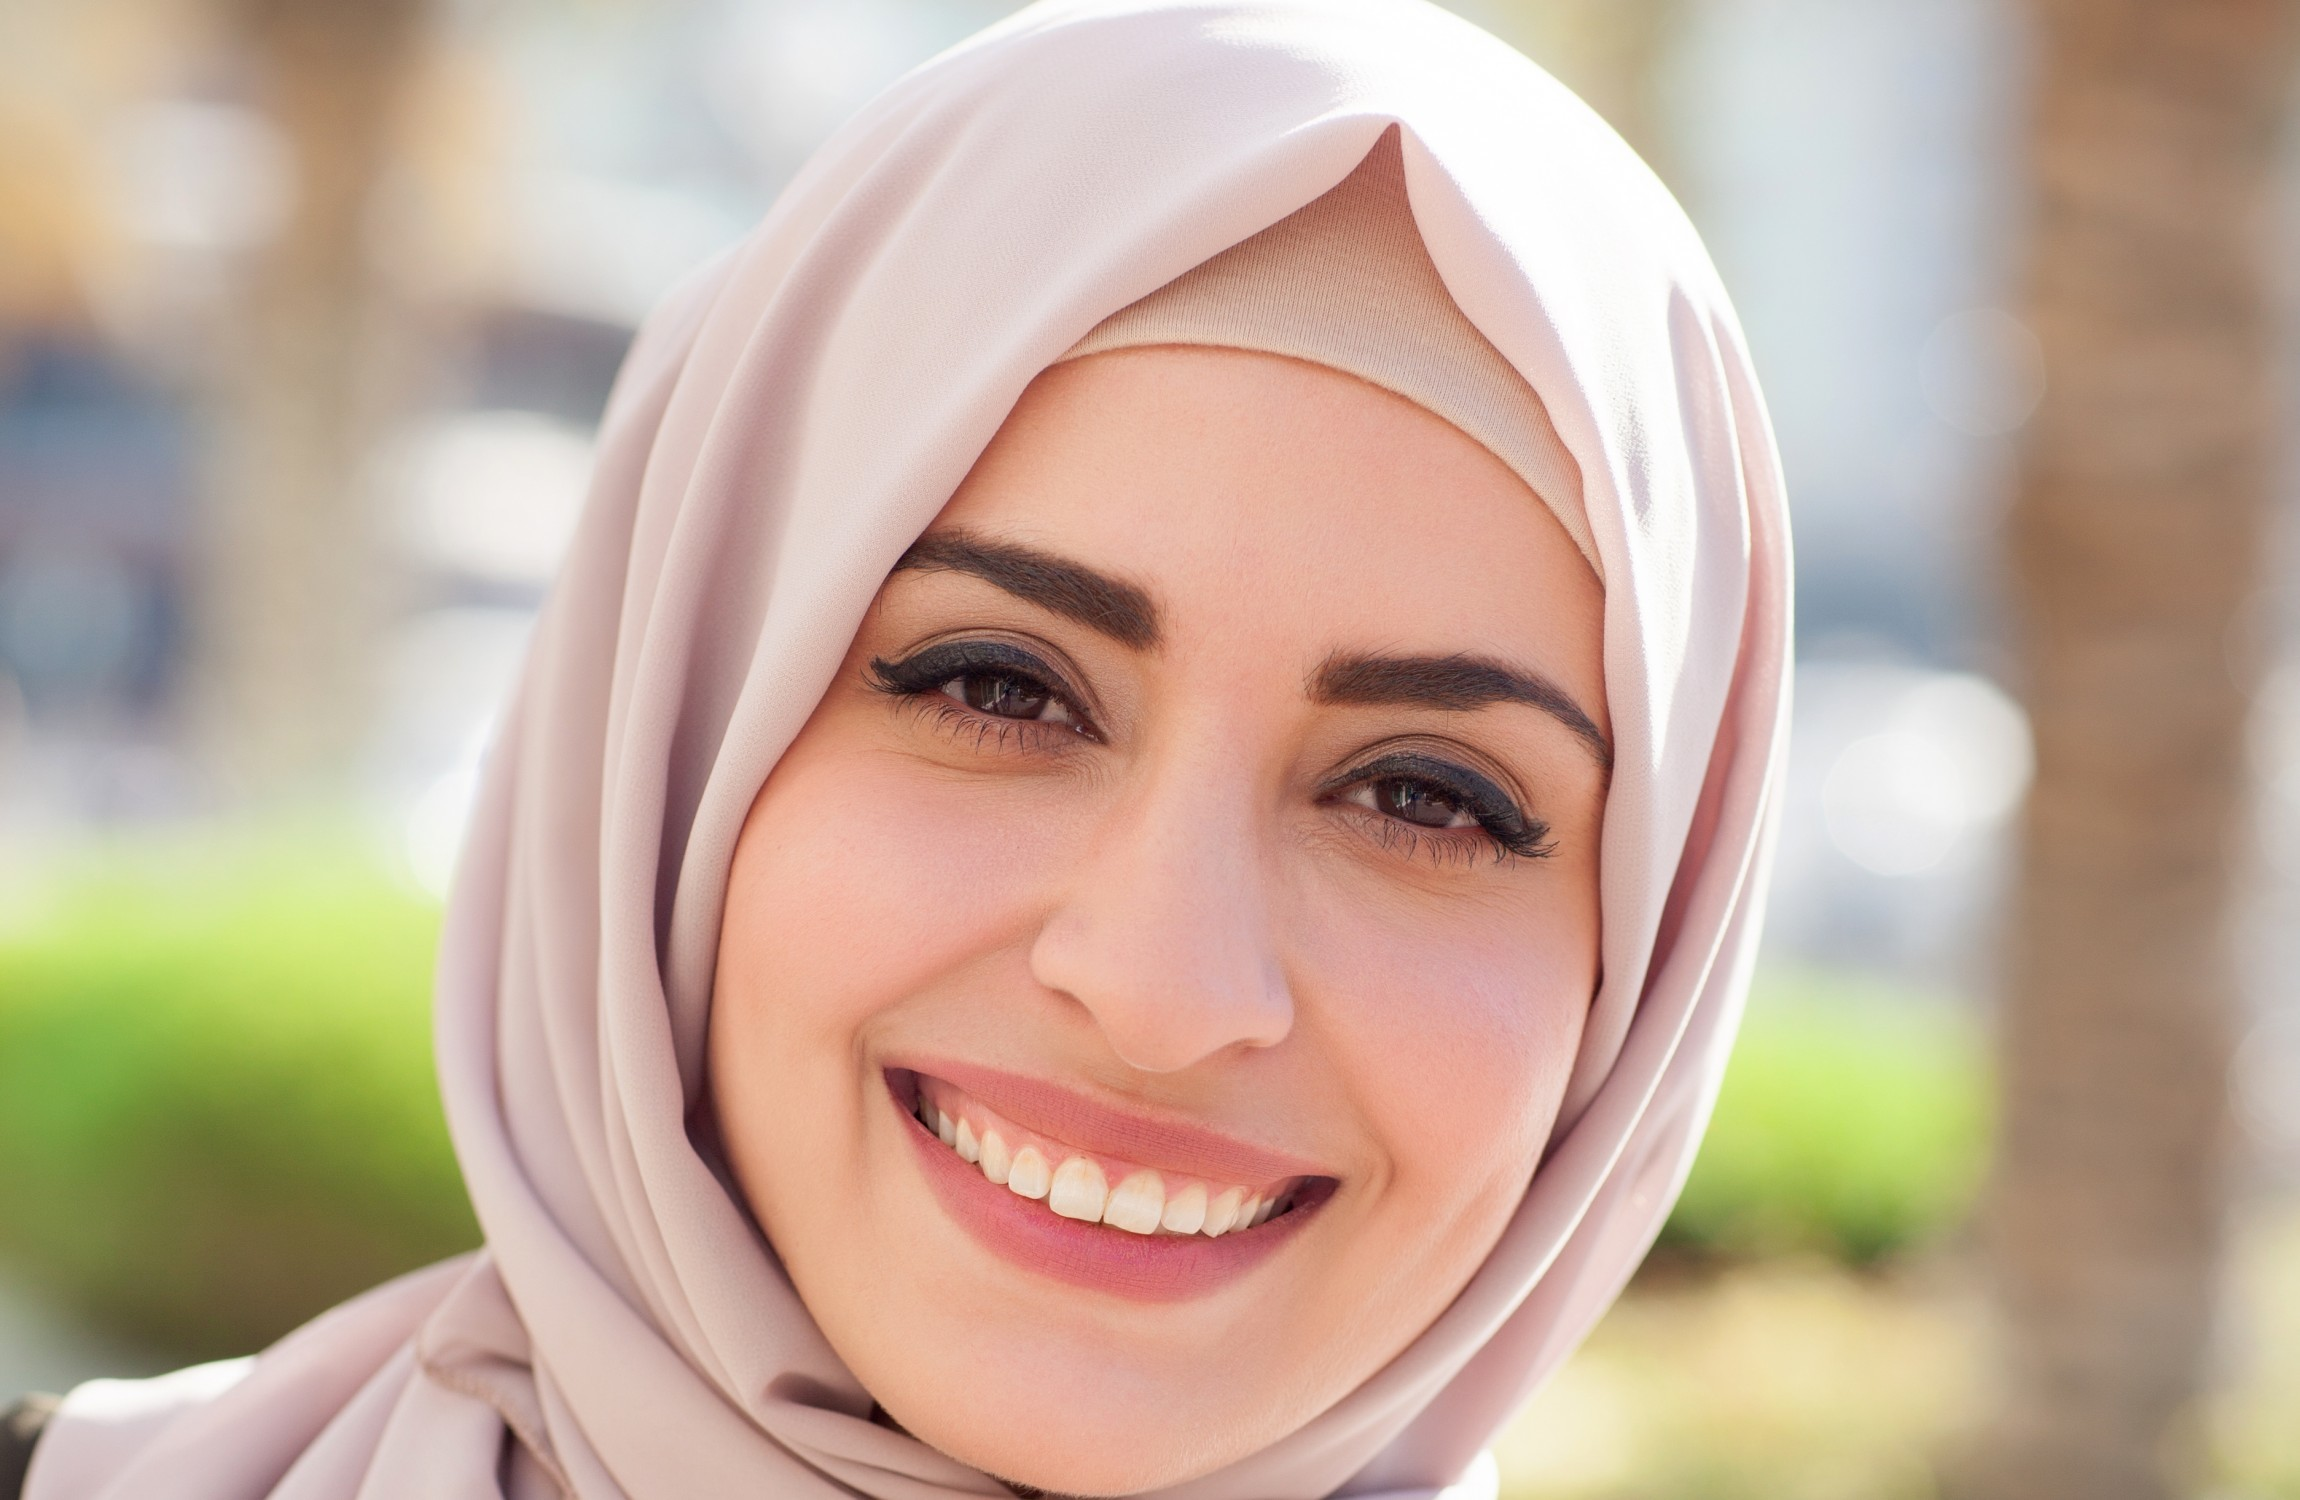 allons single muslim girls Muslim dating 'guru' thanna alghabban has been called a 'whore and a hoe' for giving women relationship advice thanna makes videos for instagram and youtube for muslim women about dating.